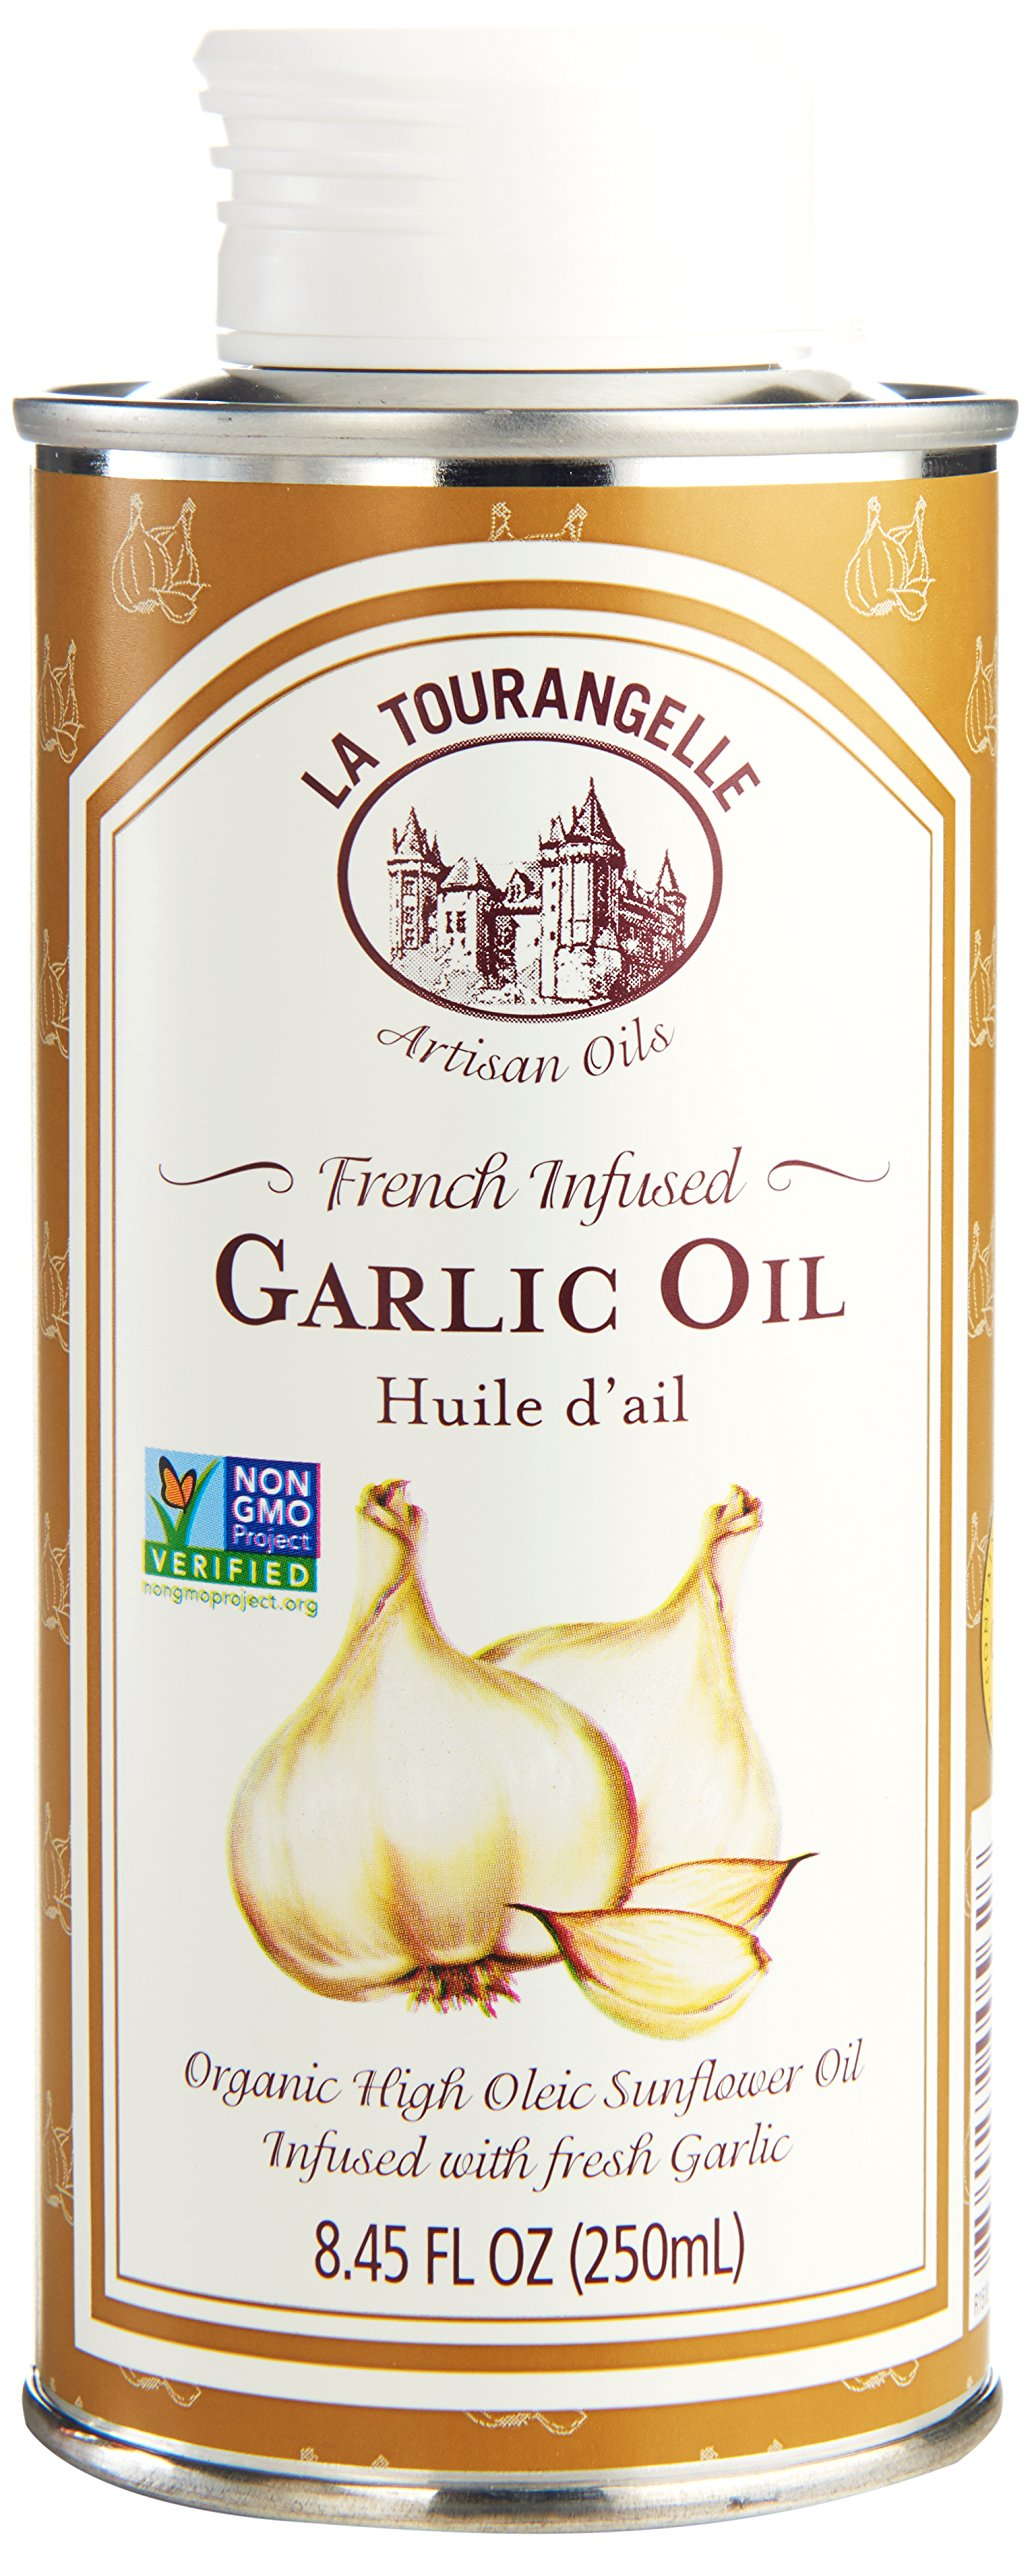 La Tourangelle Garlic Infused Sunflower Oil 8.45 Fl. Oz, Sunflower Oil Infused with Fresh Garlic for Cooking, Seasoning, and Dressing